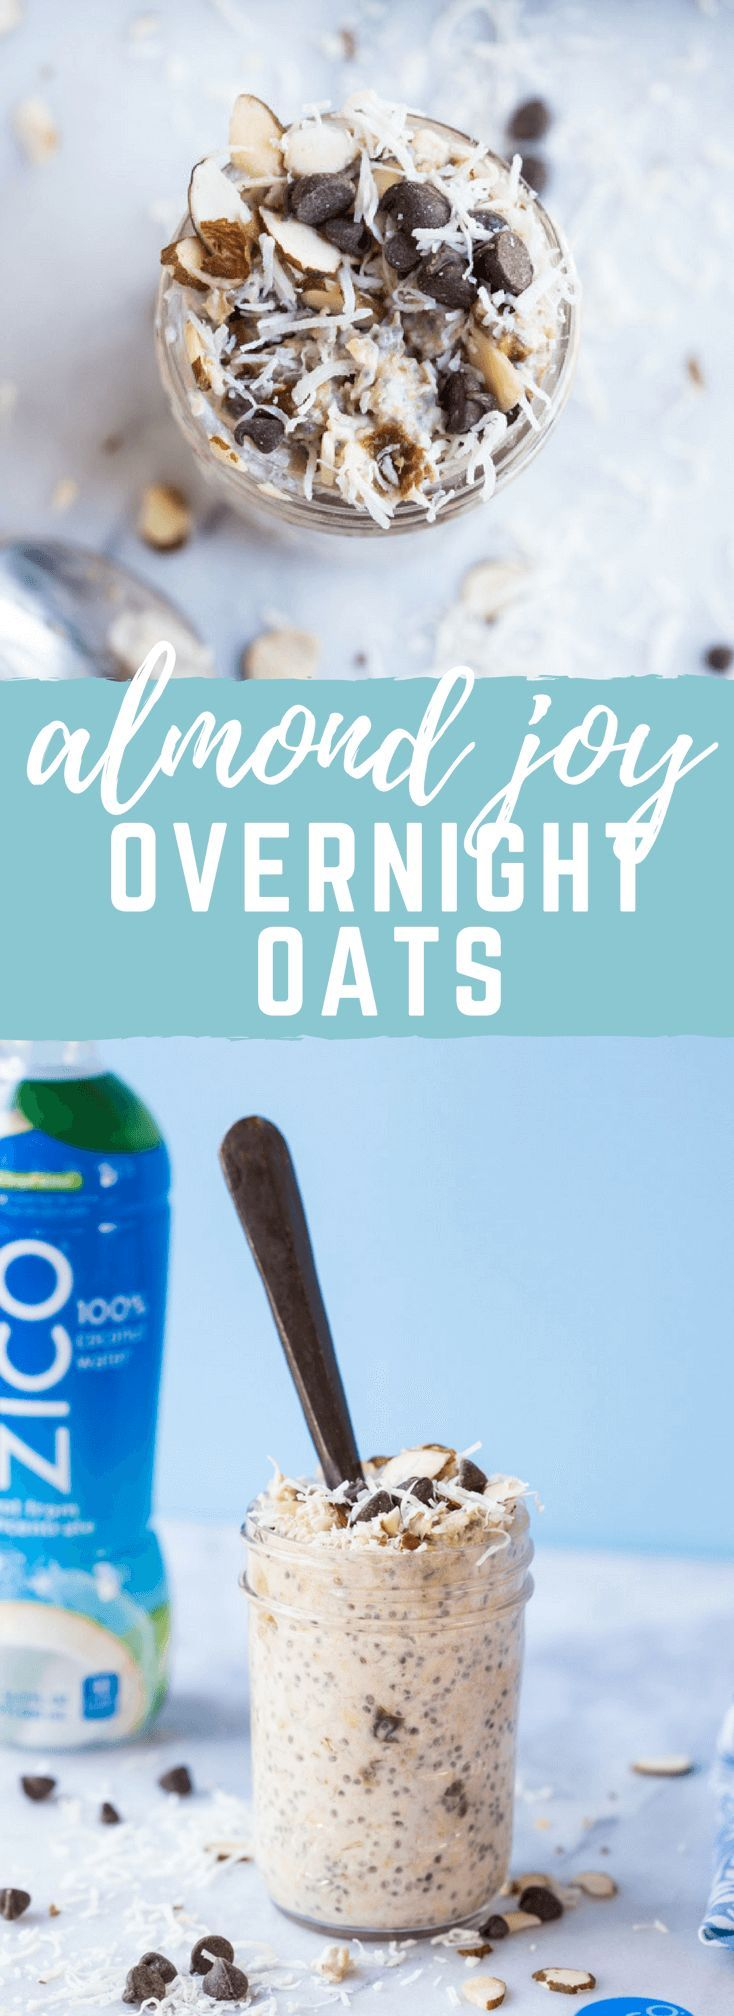 Almond Joy Overnight Oats made with coconut water.... say what??!! Yep, healthy dessert for breakfast... NO ADDED SUGAR and dairy free (well, minus the chocolate on top...but gimmeee all dat chocolate!) in collaboration with @ZICOCoconut #AD #InsideIsEver